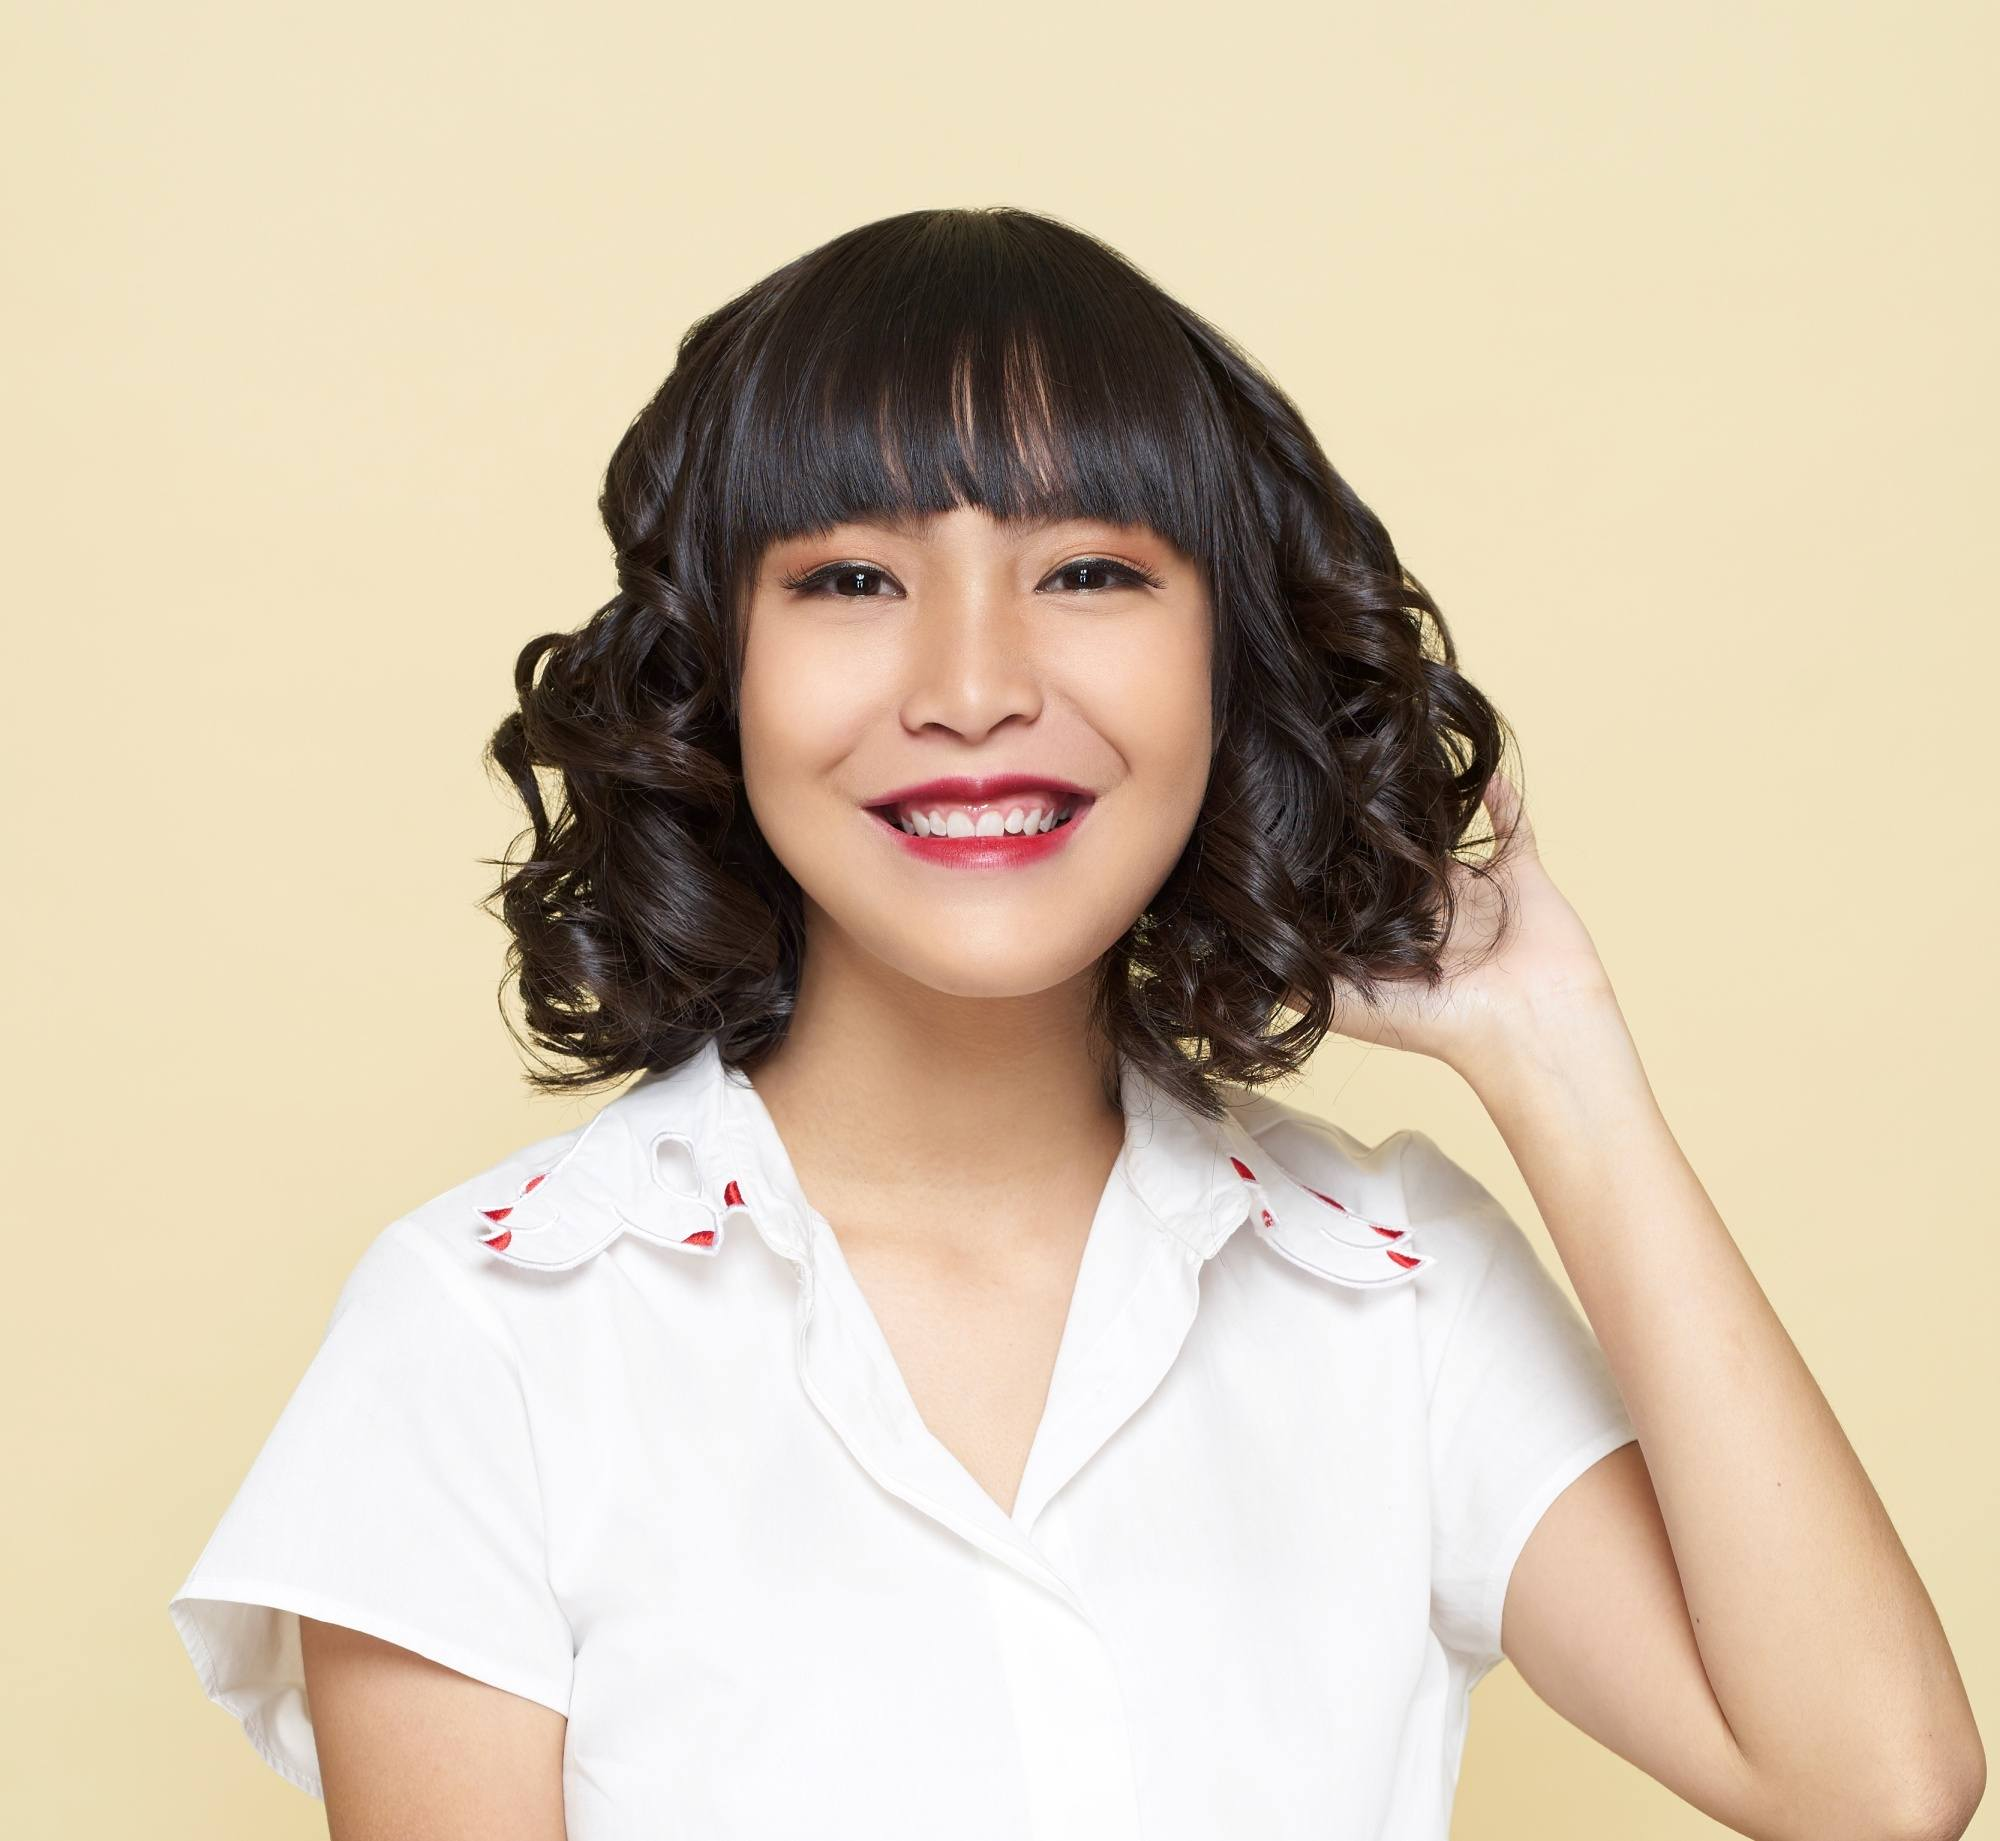 Layered curly hair: Asian woman with short black curly hair smiling